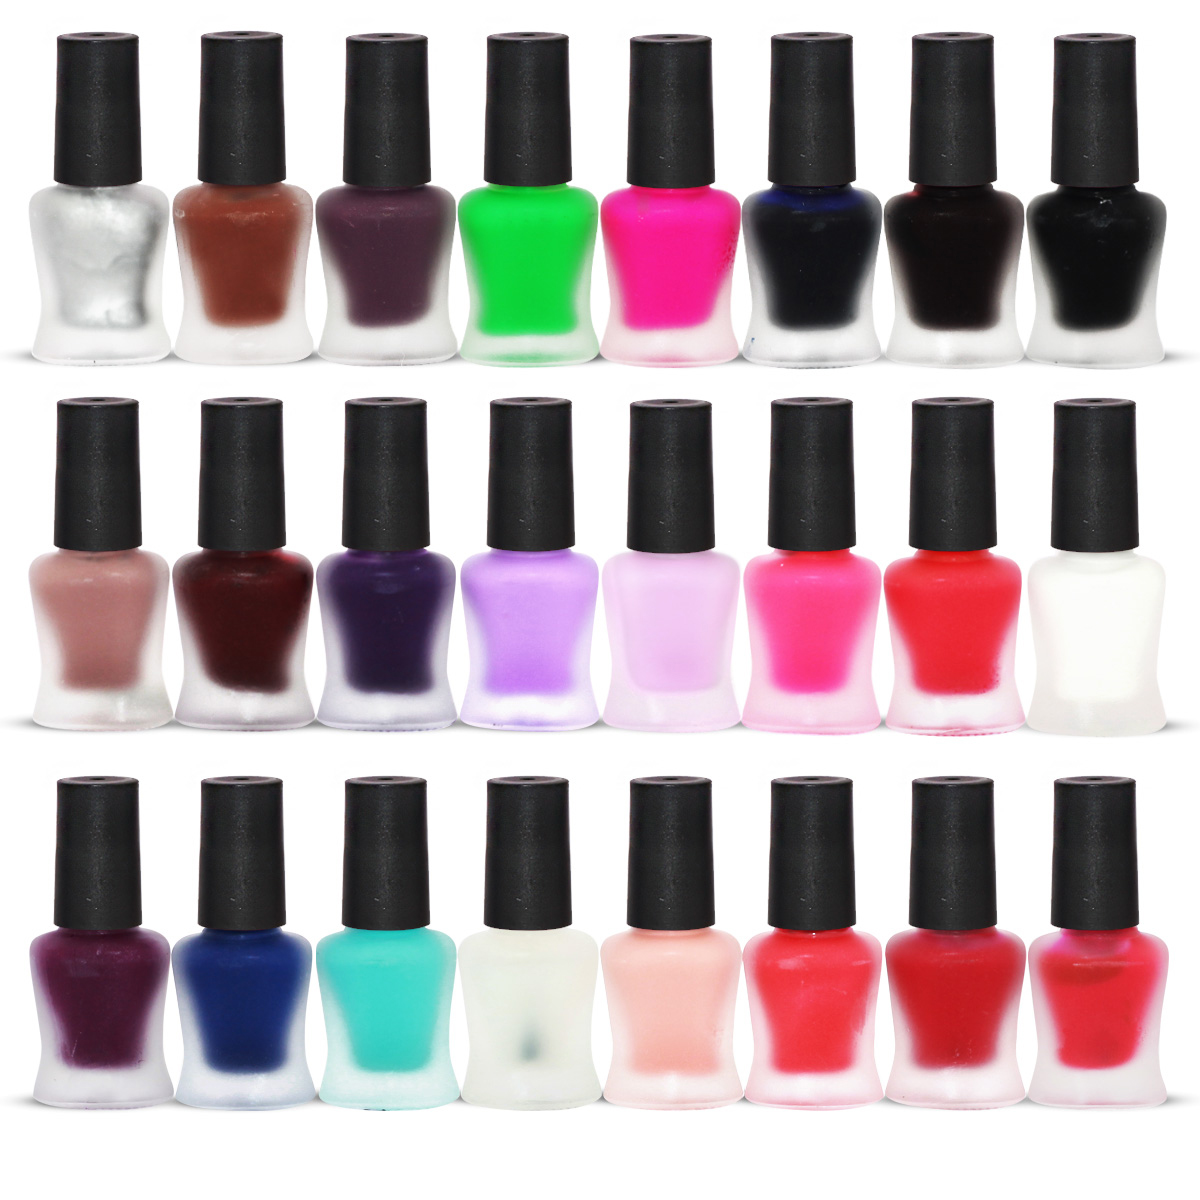 24 x MATTE NAIL POLISH SET 24 DIFFERENT COLOURS HIGH COVERAGE QUICK ...